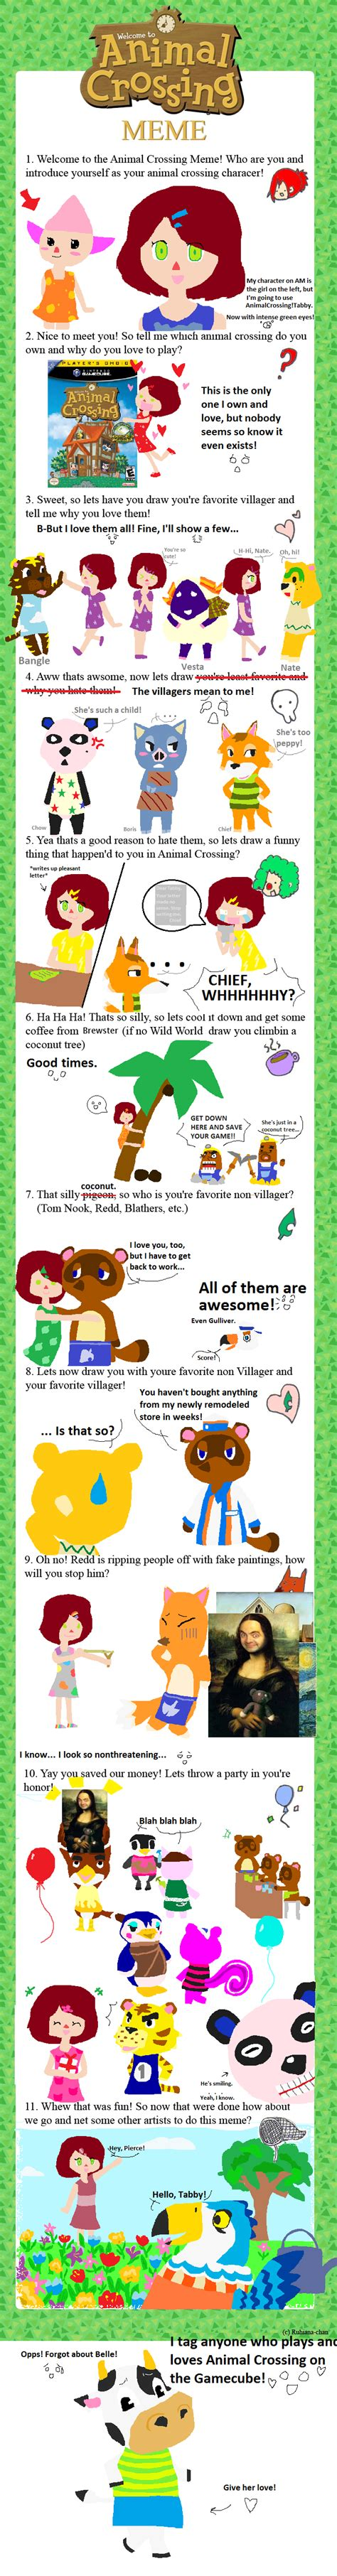 Animal Crossing Memes - animal crossing meme by tabberhatter on deviantart